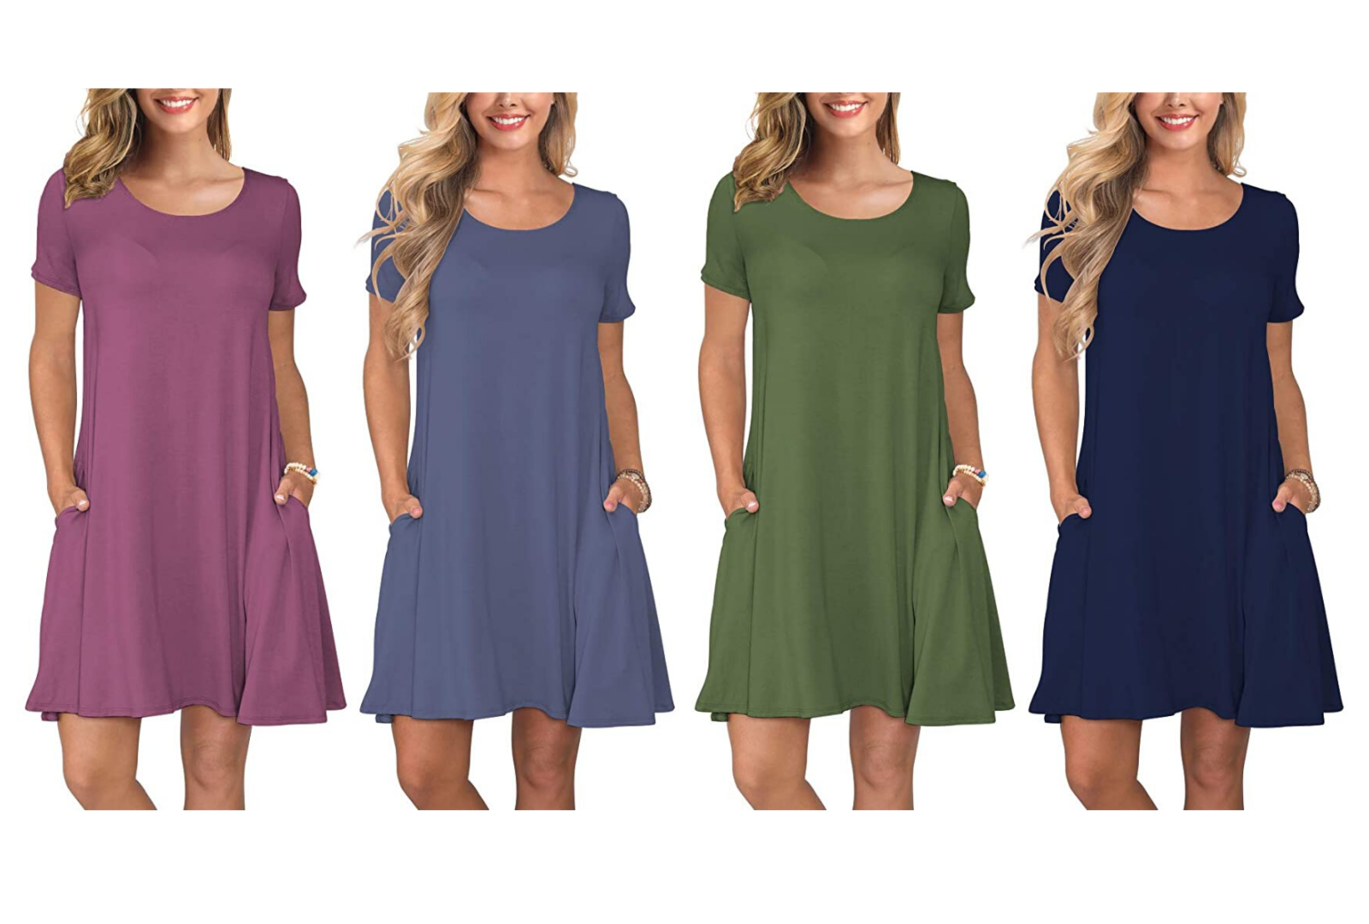 amazon loungewear dresses